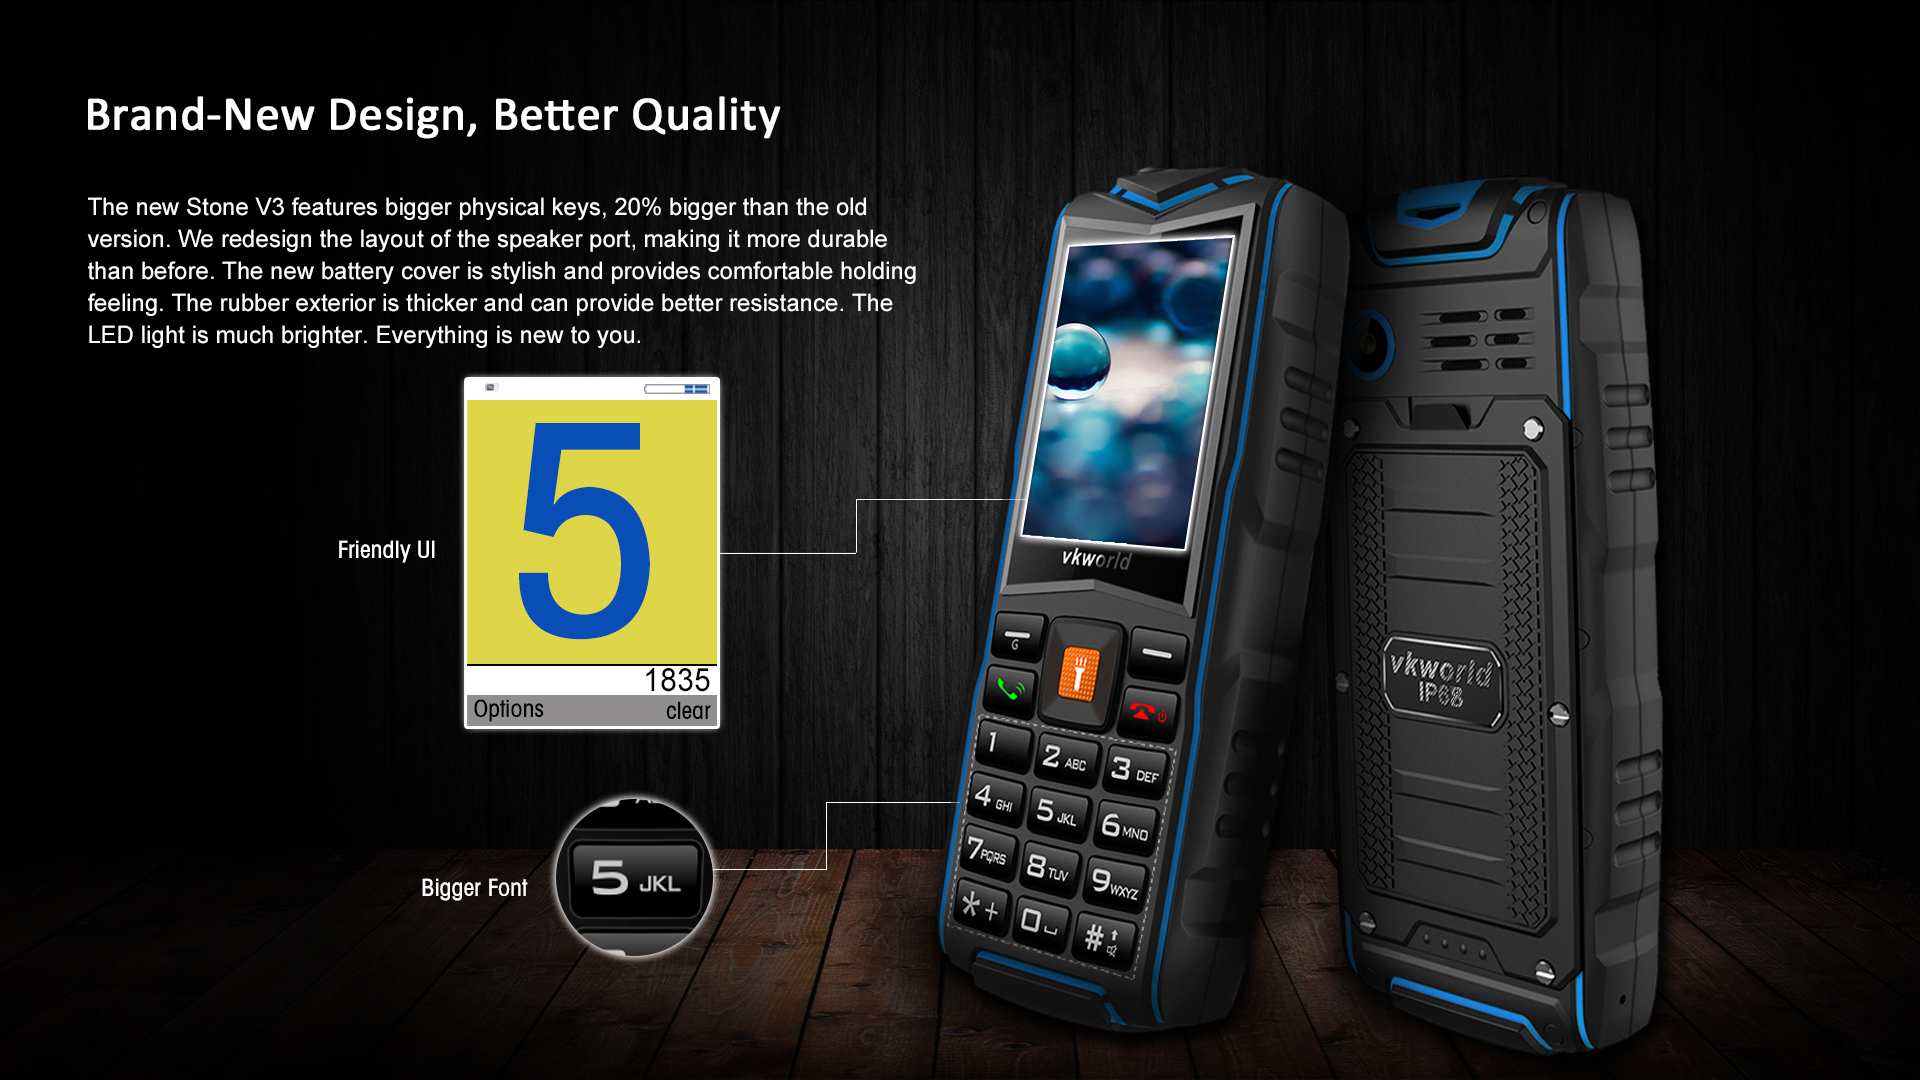 Vkworld New Stone V3 IP68 3000mAh 2.4 Inch 3 SIM Cards 2MP Waterproof Outdooors Mobile Phone